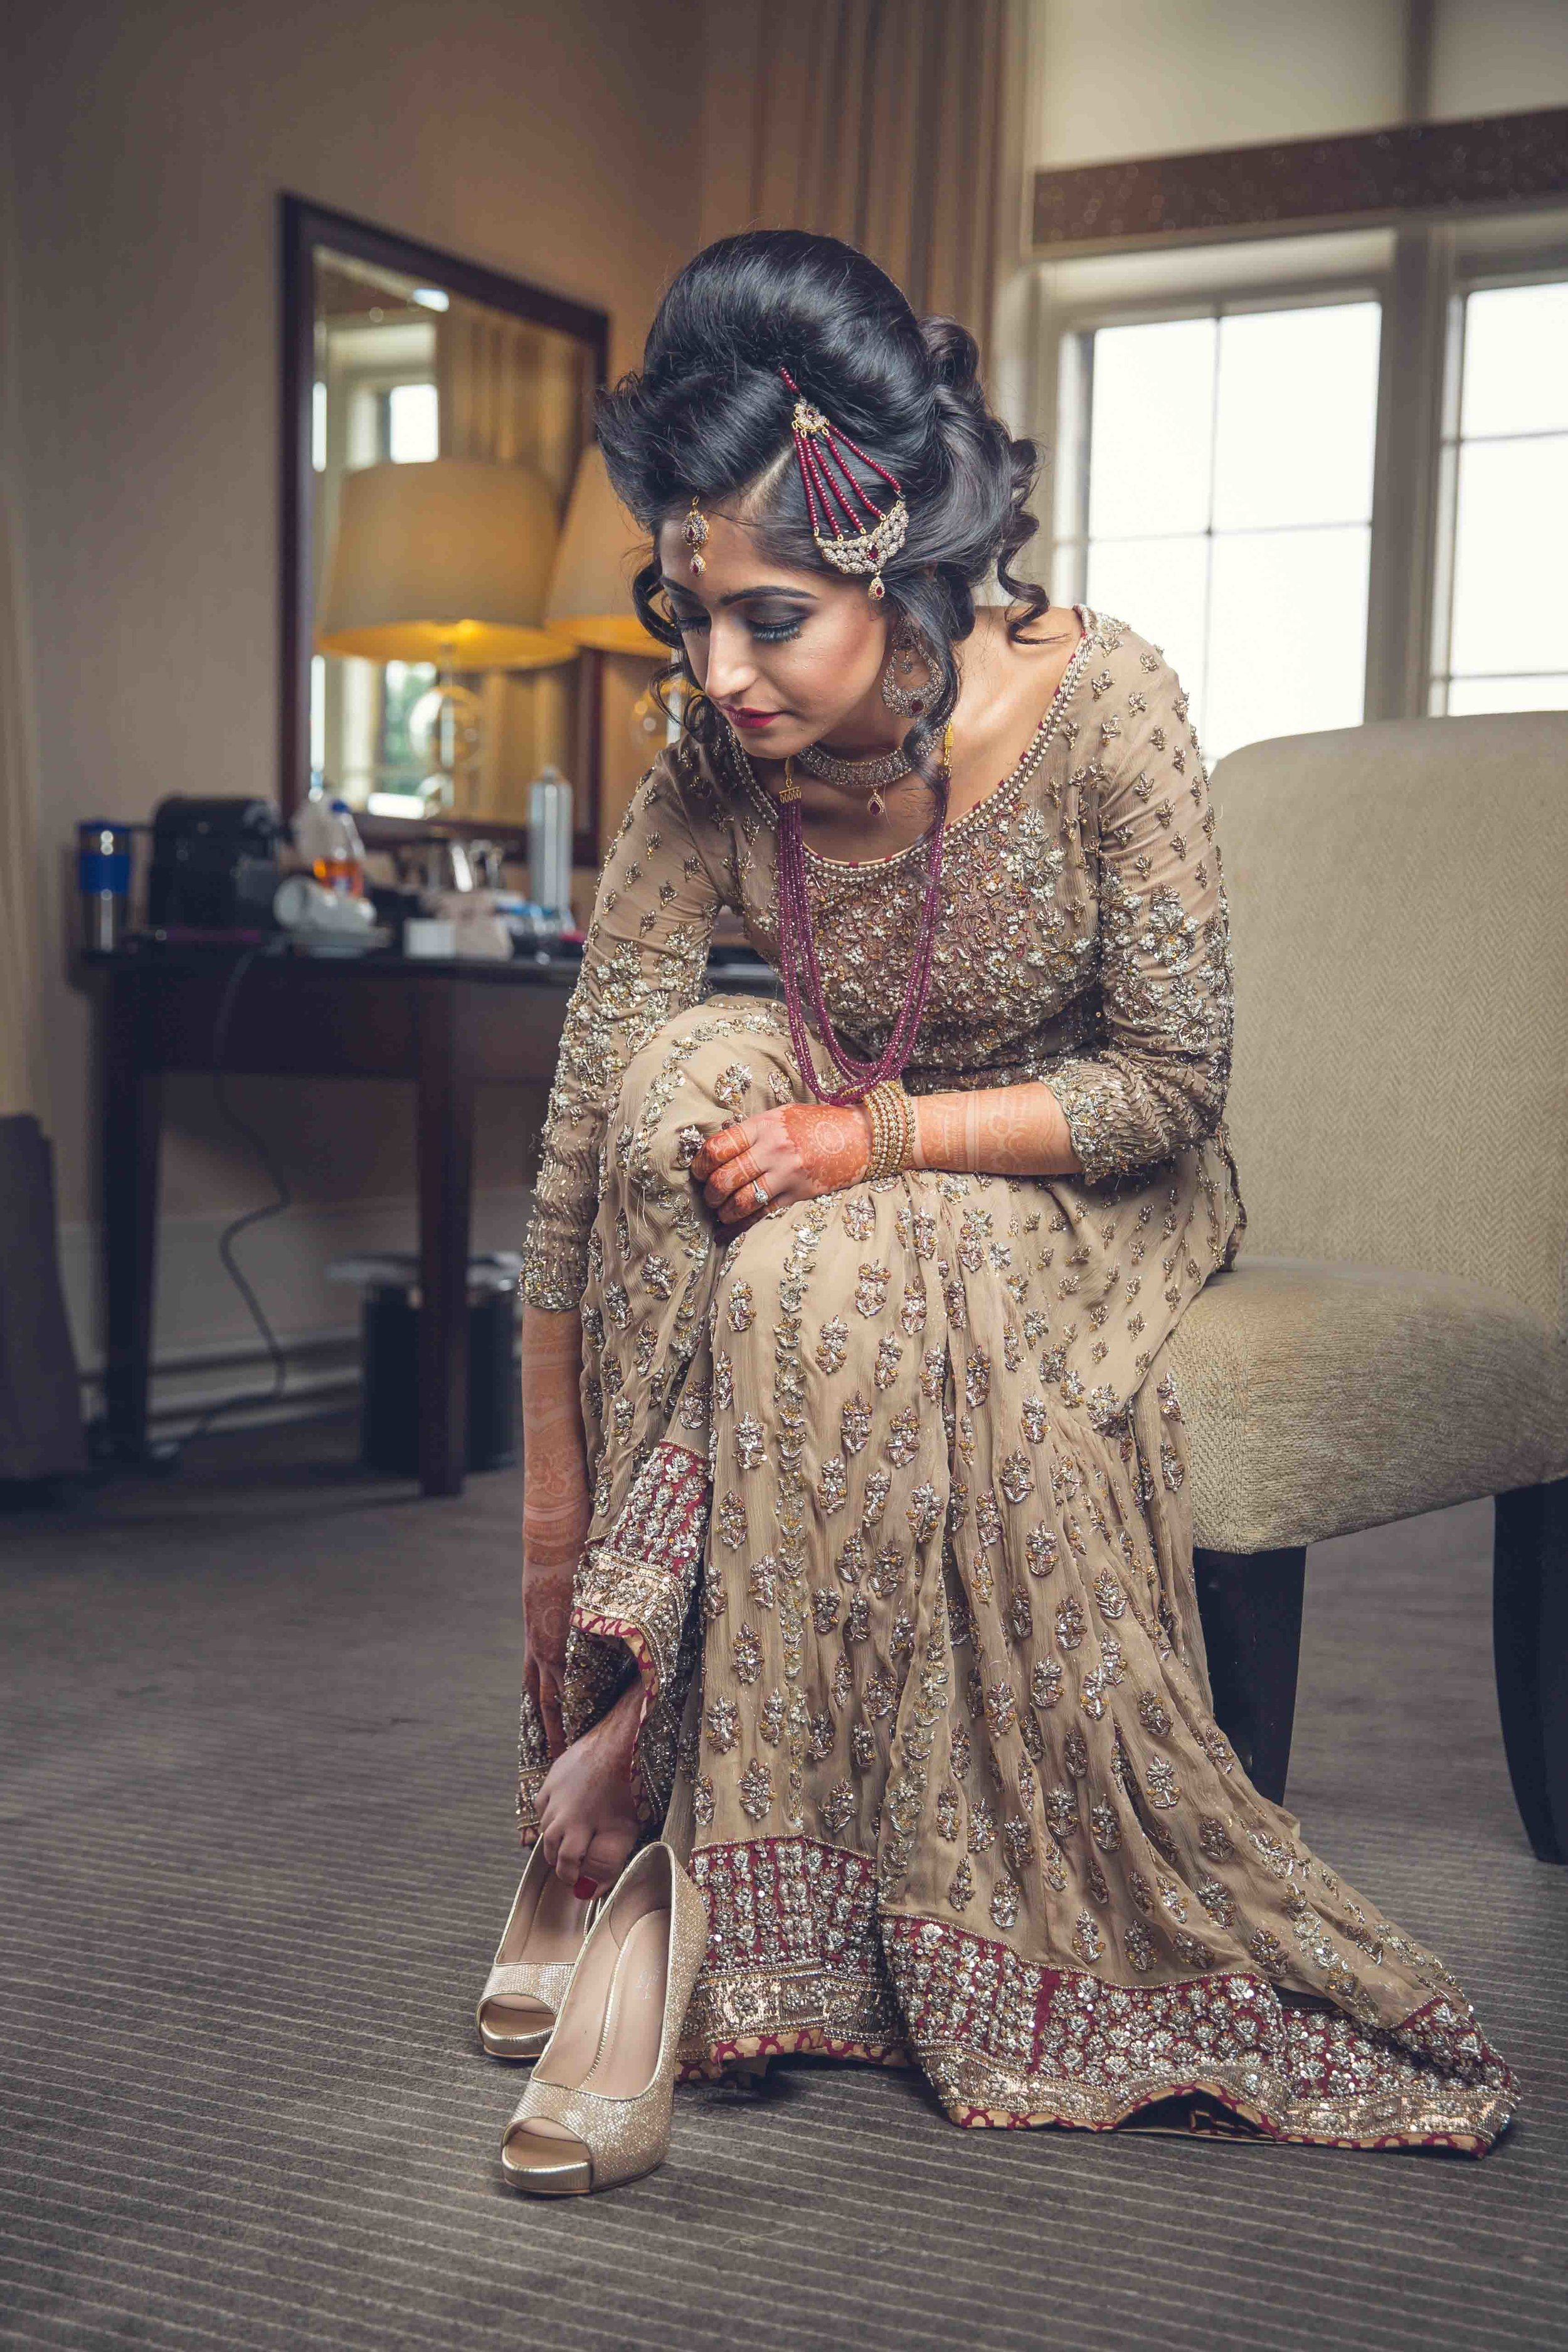 Opu Sultan Photography Asian wedding photography scotland edinburgh glasgow manchester birmingham london-243.jpg